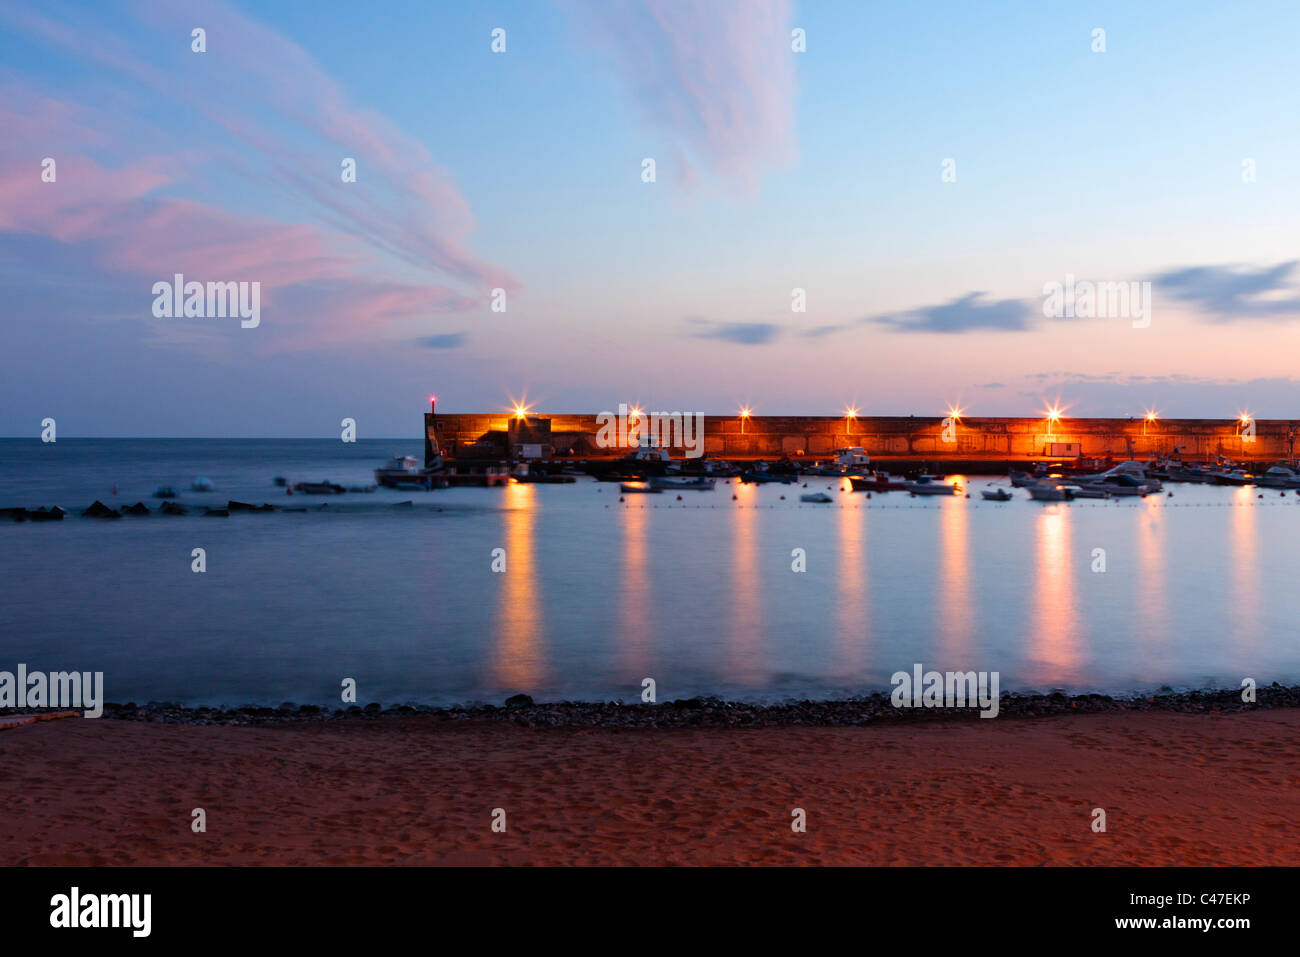 the-pier-at-playa-san-juan-at-dusk-in-te